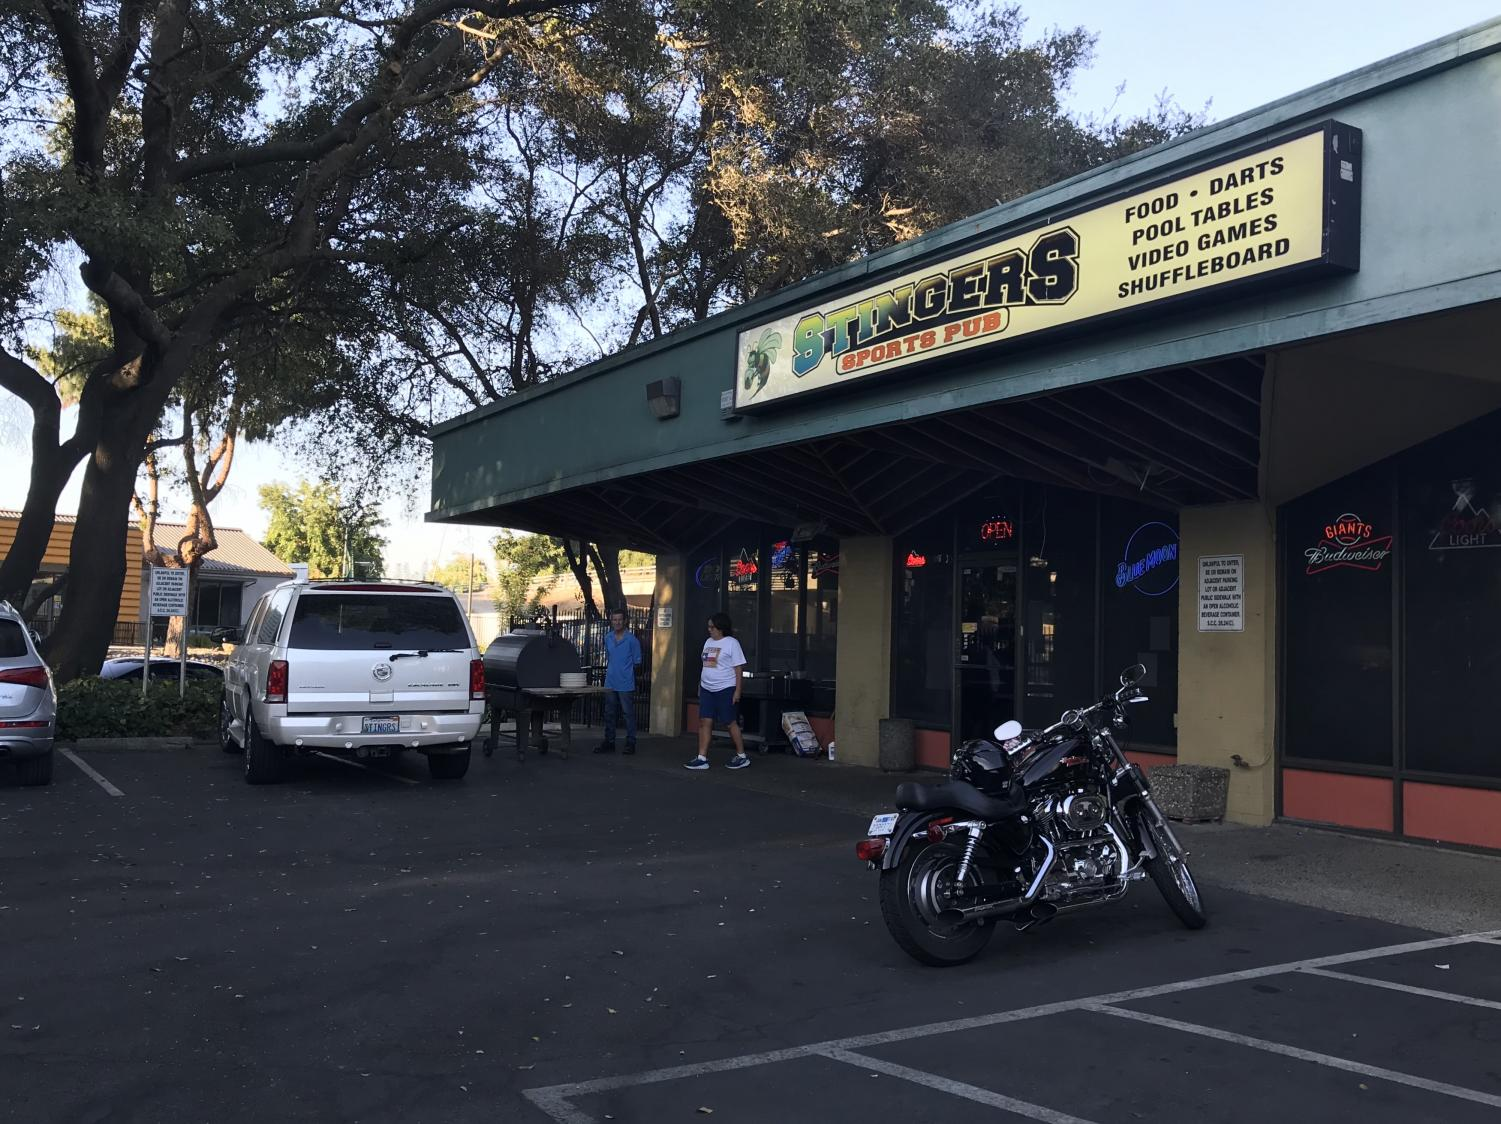 An arrest was made after shots were fired at Stingers Sports Pub Wednesday. The sports bar is popular among Sac State students and is less than a mile away from campus.